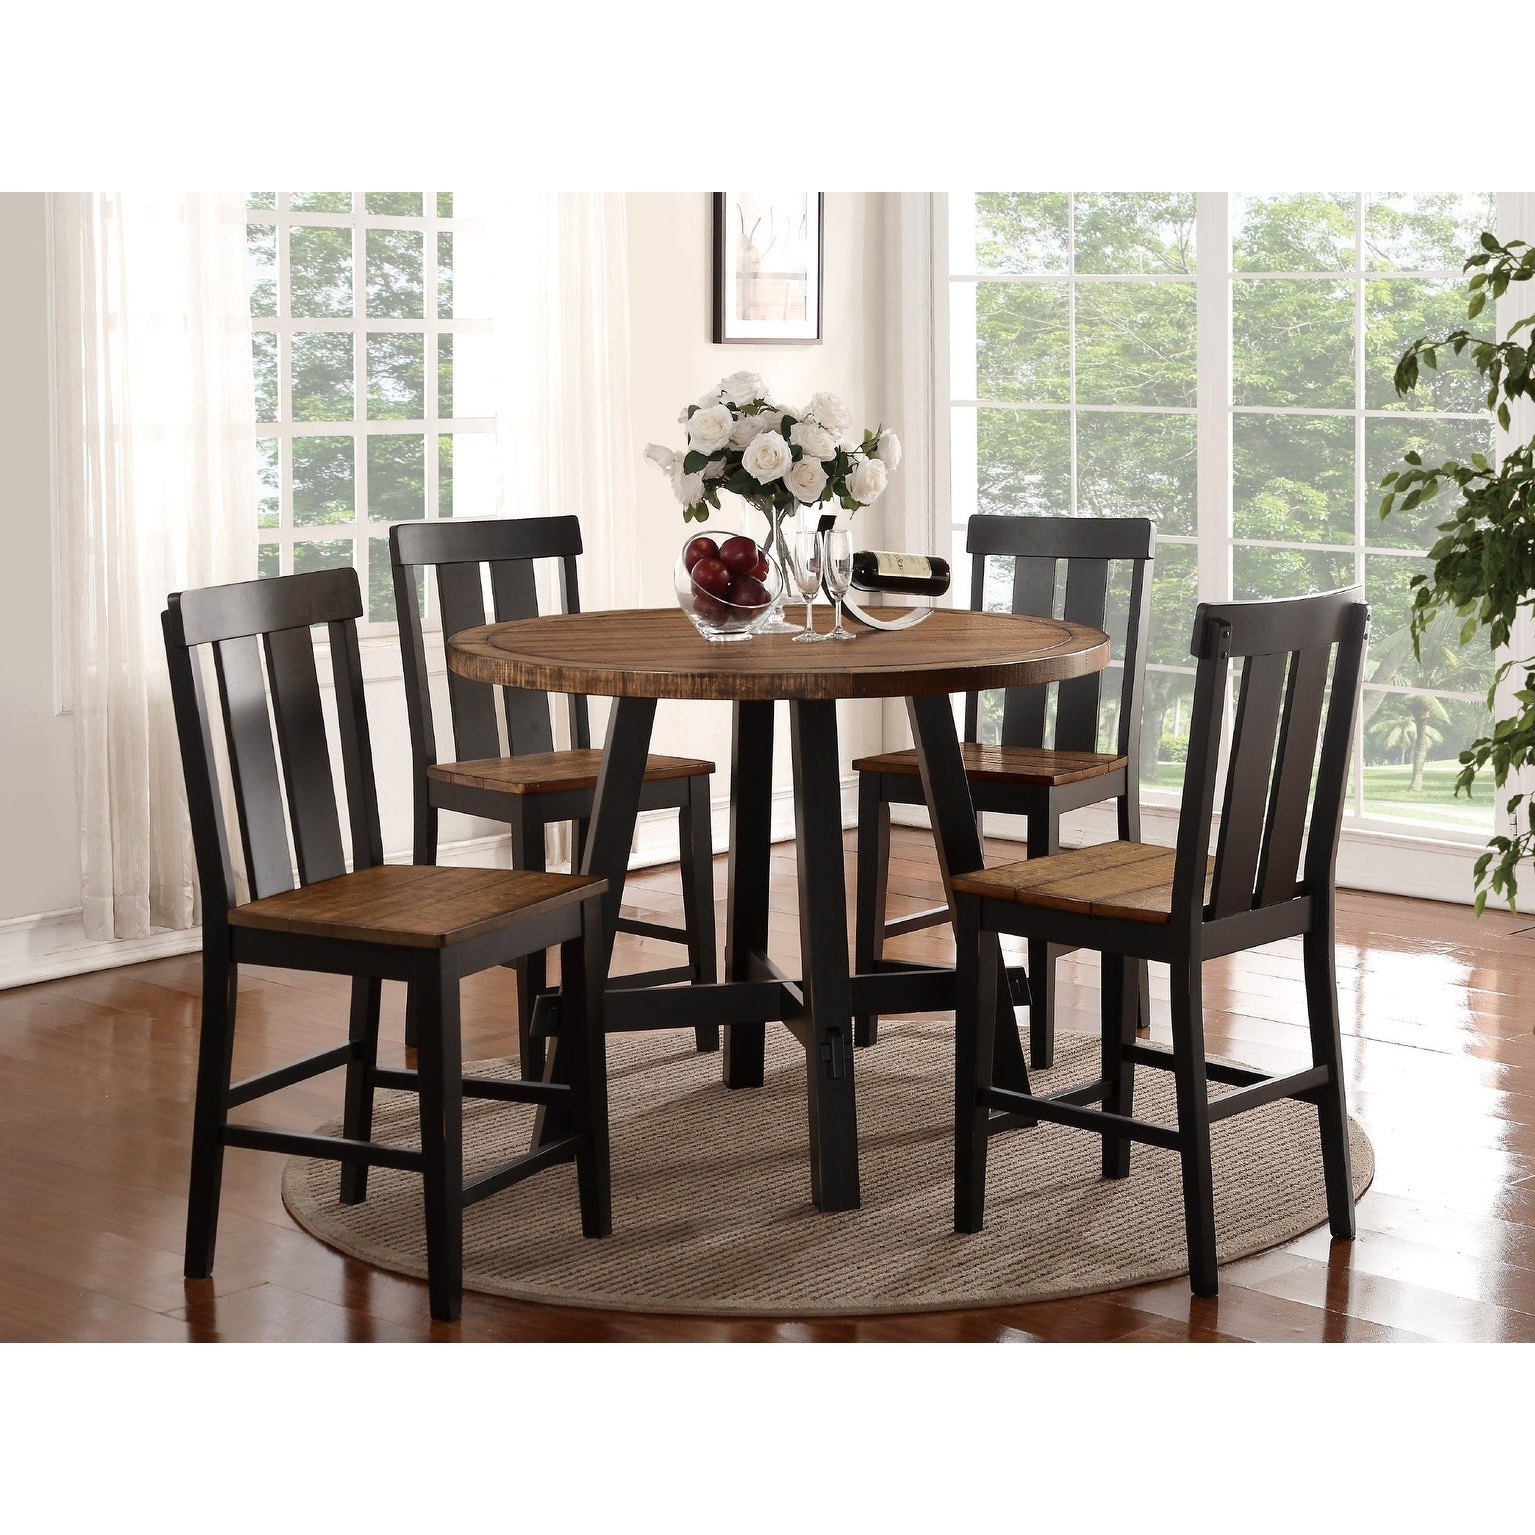 Well Liked Goodman 5 Piece Solid Wood Dining Sets (Set Of 5) With Shop Goodman 5 Piece Counter Height Dining Set – Free Shipping Today (View 23 of 25)